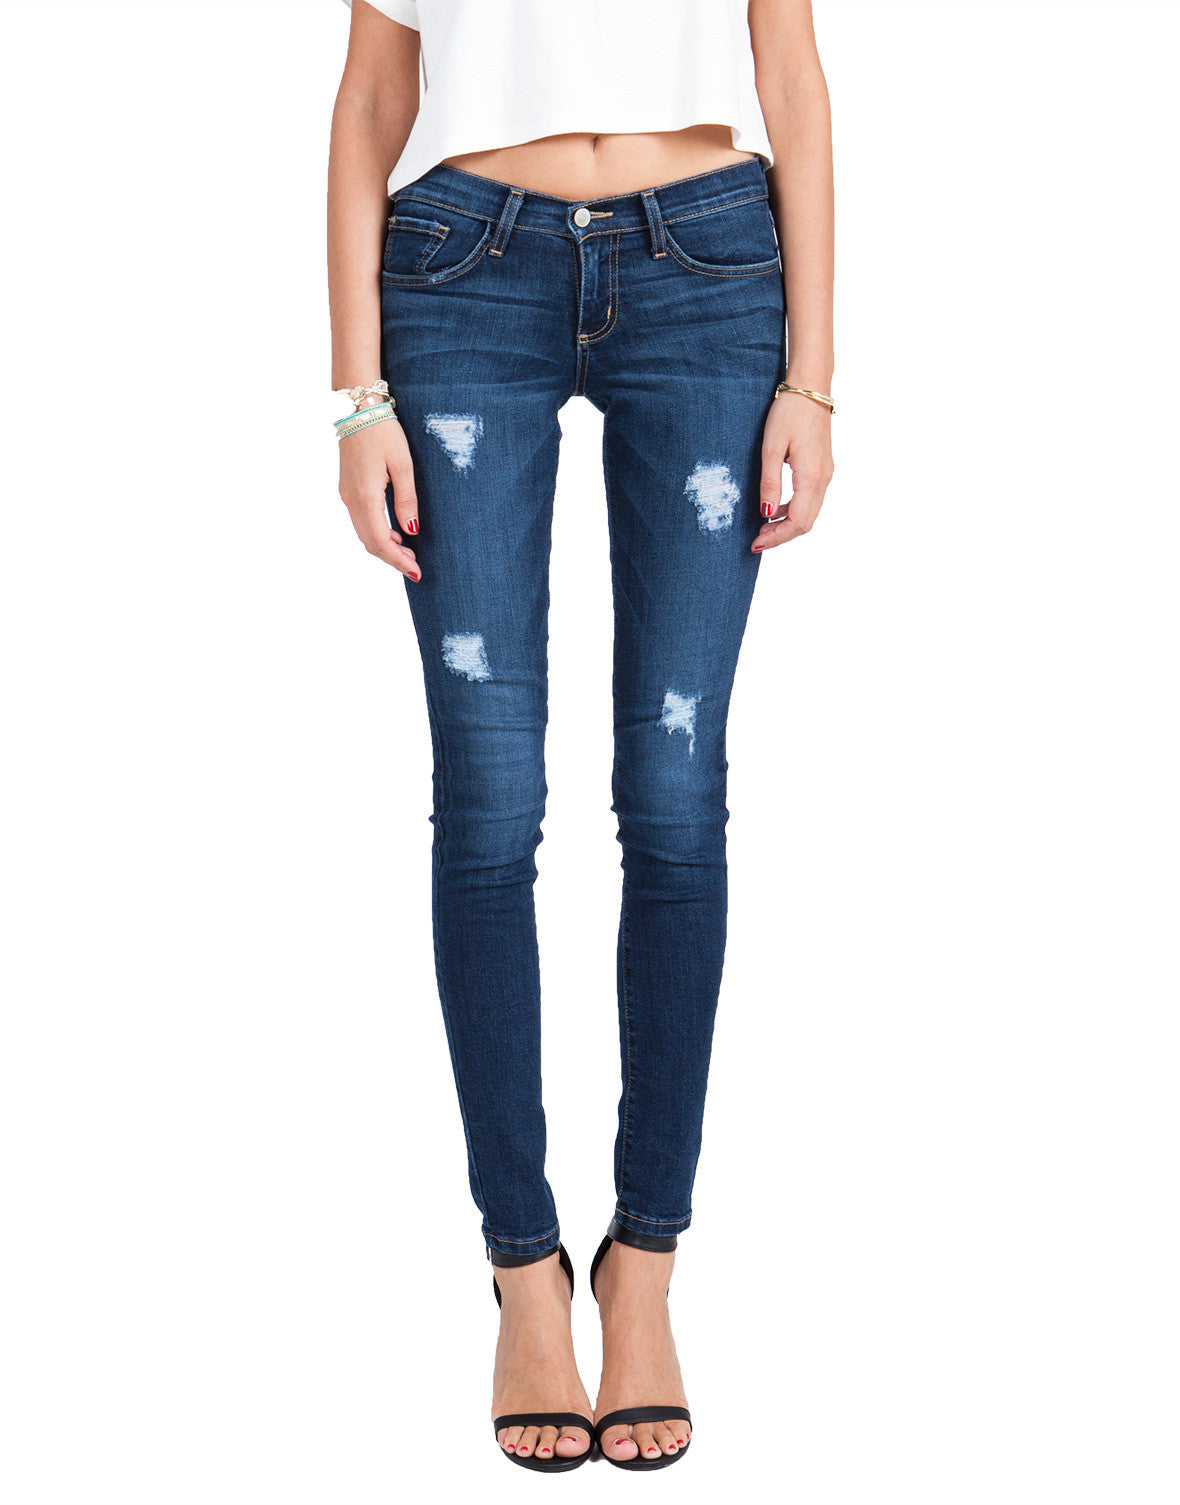 Flying Monkey Distressed Jeans - 29 - 2020AVE